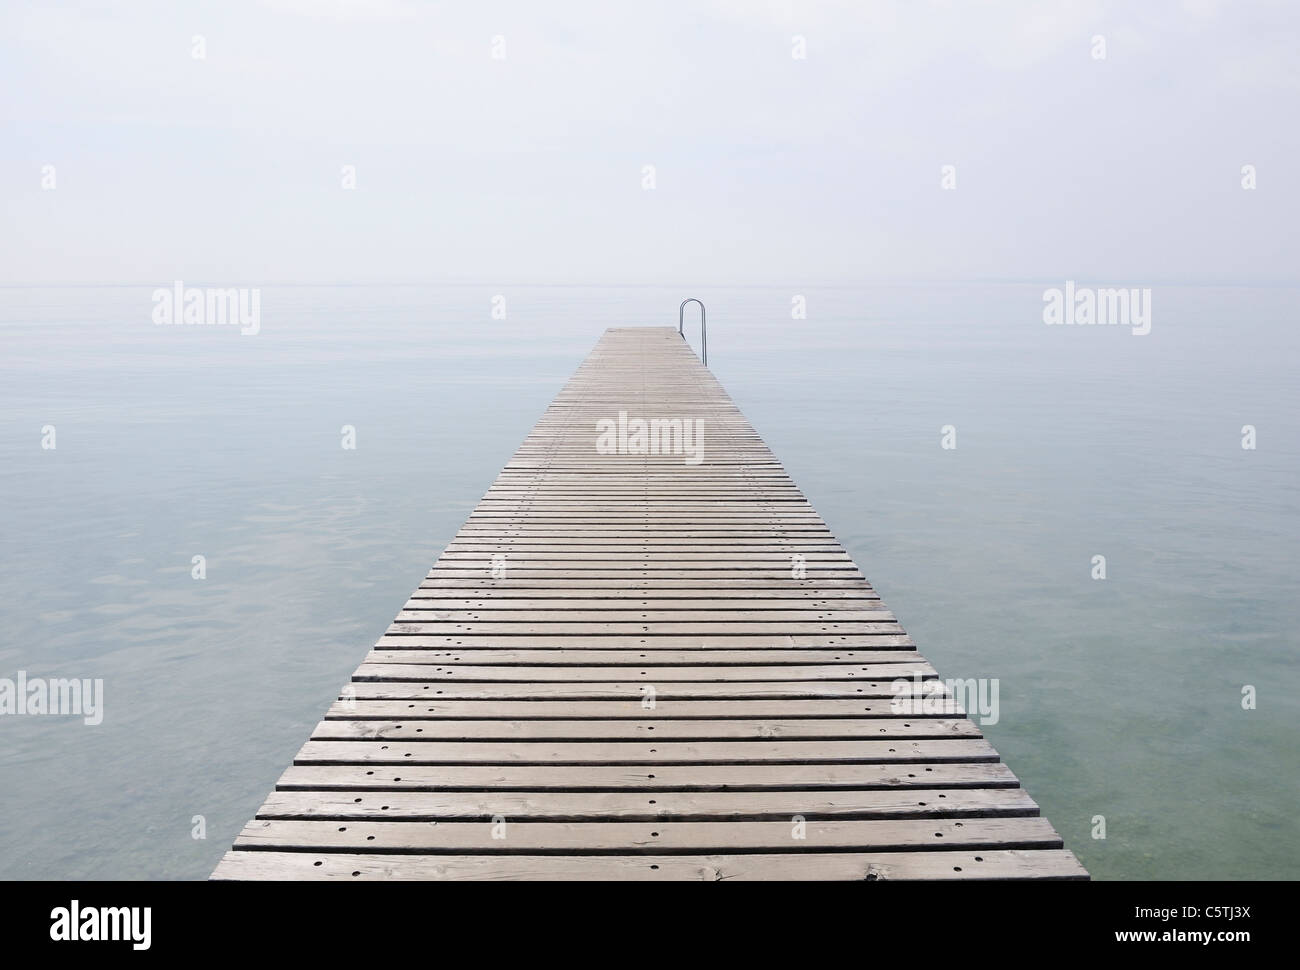 Italy, Jetty on Lake Garda in mist - Stock Image